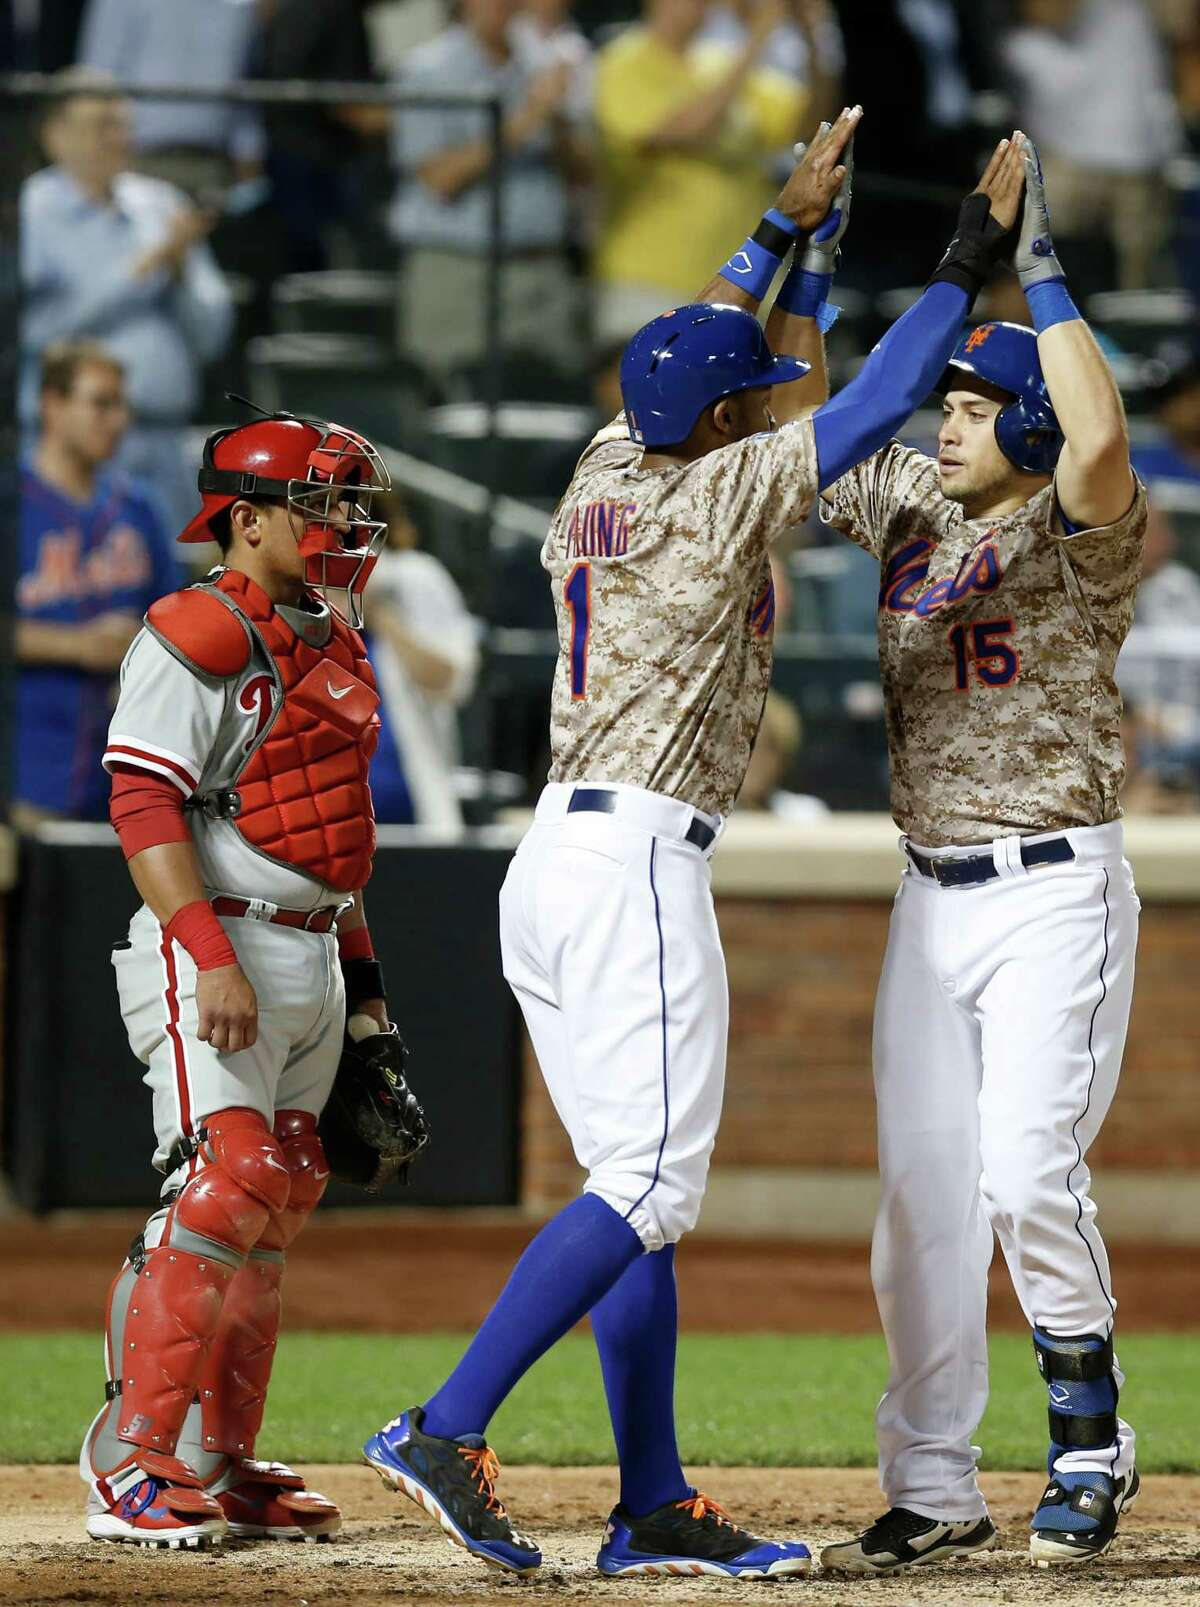 Philadelphia Phillies catcher Carlos Ruiz, far left, watches as New York Mets Travis d'Arnaud , right, (15) celebrates with the Mets Chris Young (1) at the plate after hitting a fifth-inning, three-run, home run off Philadelphia Phillies in a baseball game in New York, Monday, July 28, 2014. (AP Photo/Kathy Willens) ORG XMIT: NYM107